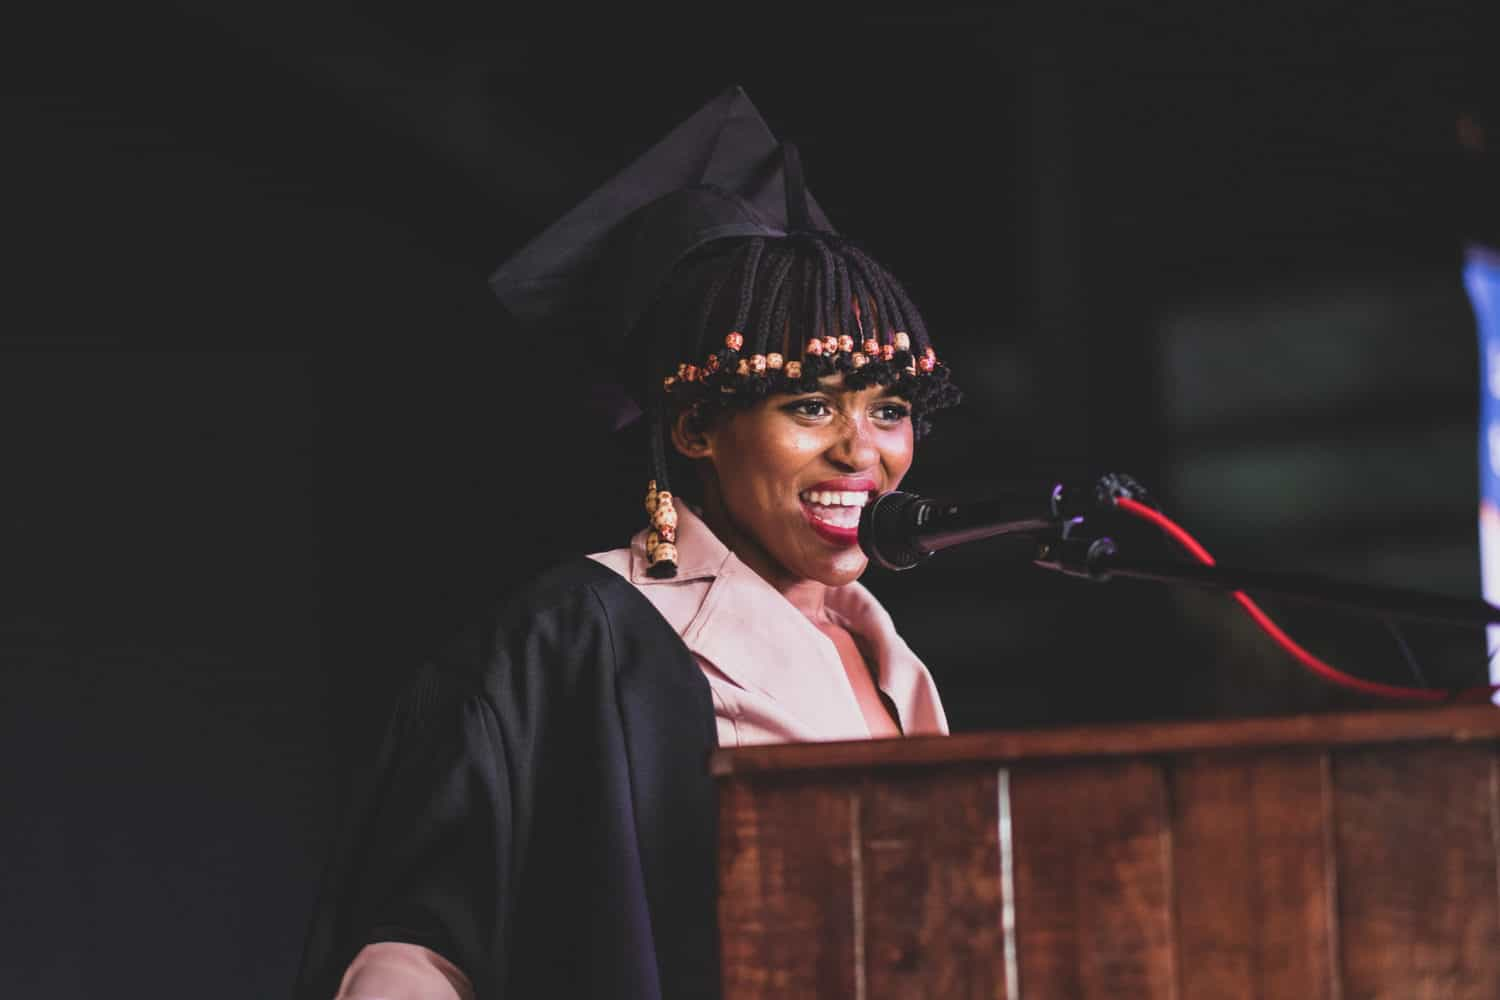 Aphelele Mvamva (21) from Kayamandi, Cape Town will fast track her career in the wine industry after being chosen as the first Drostdy Hof Graduate in their skills accelerator programme. Picture: Keli van der Weijde